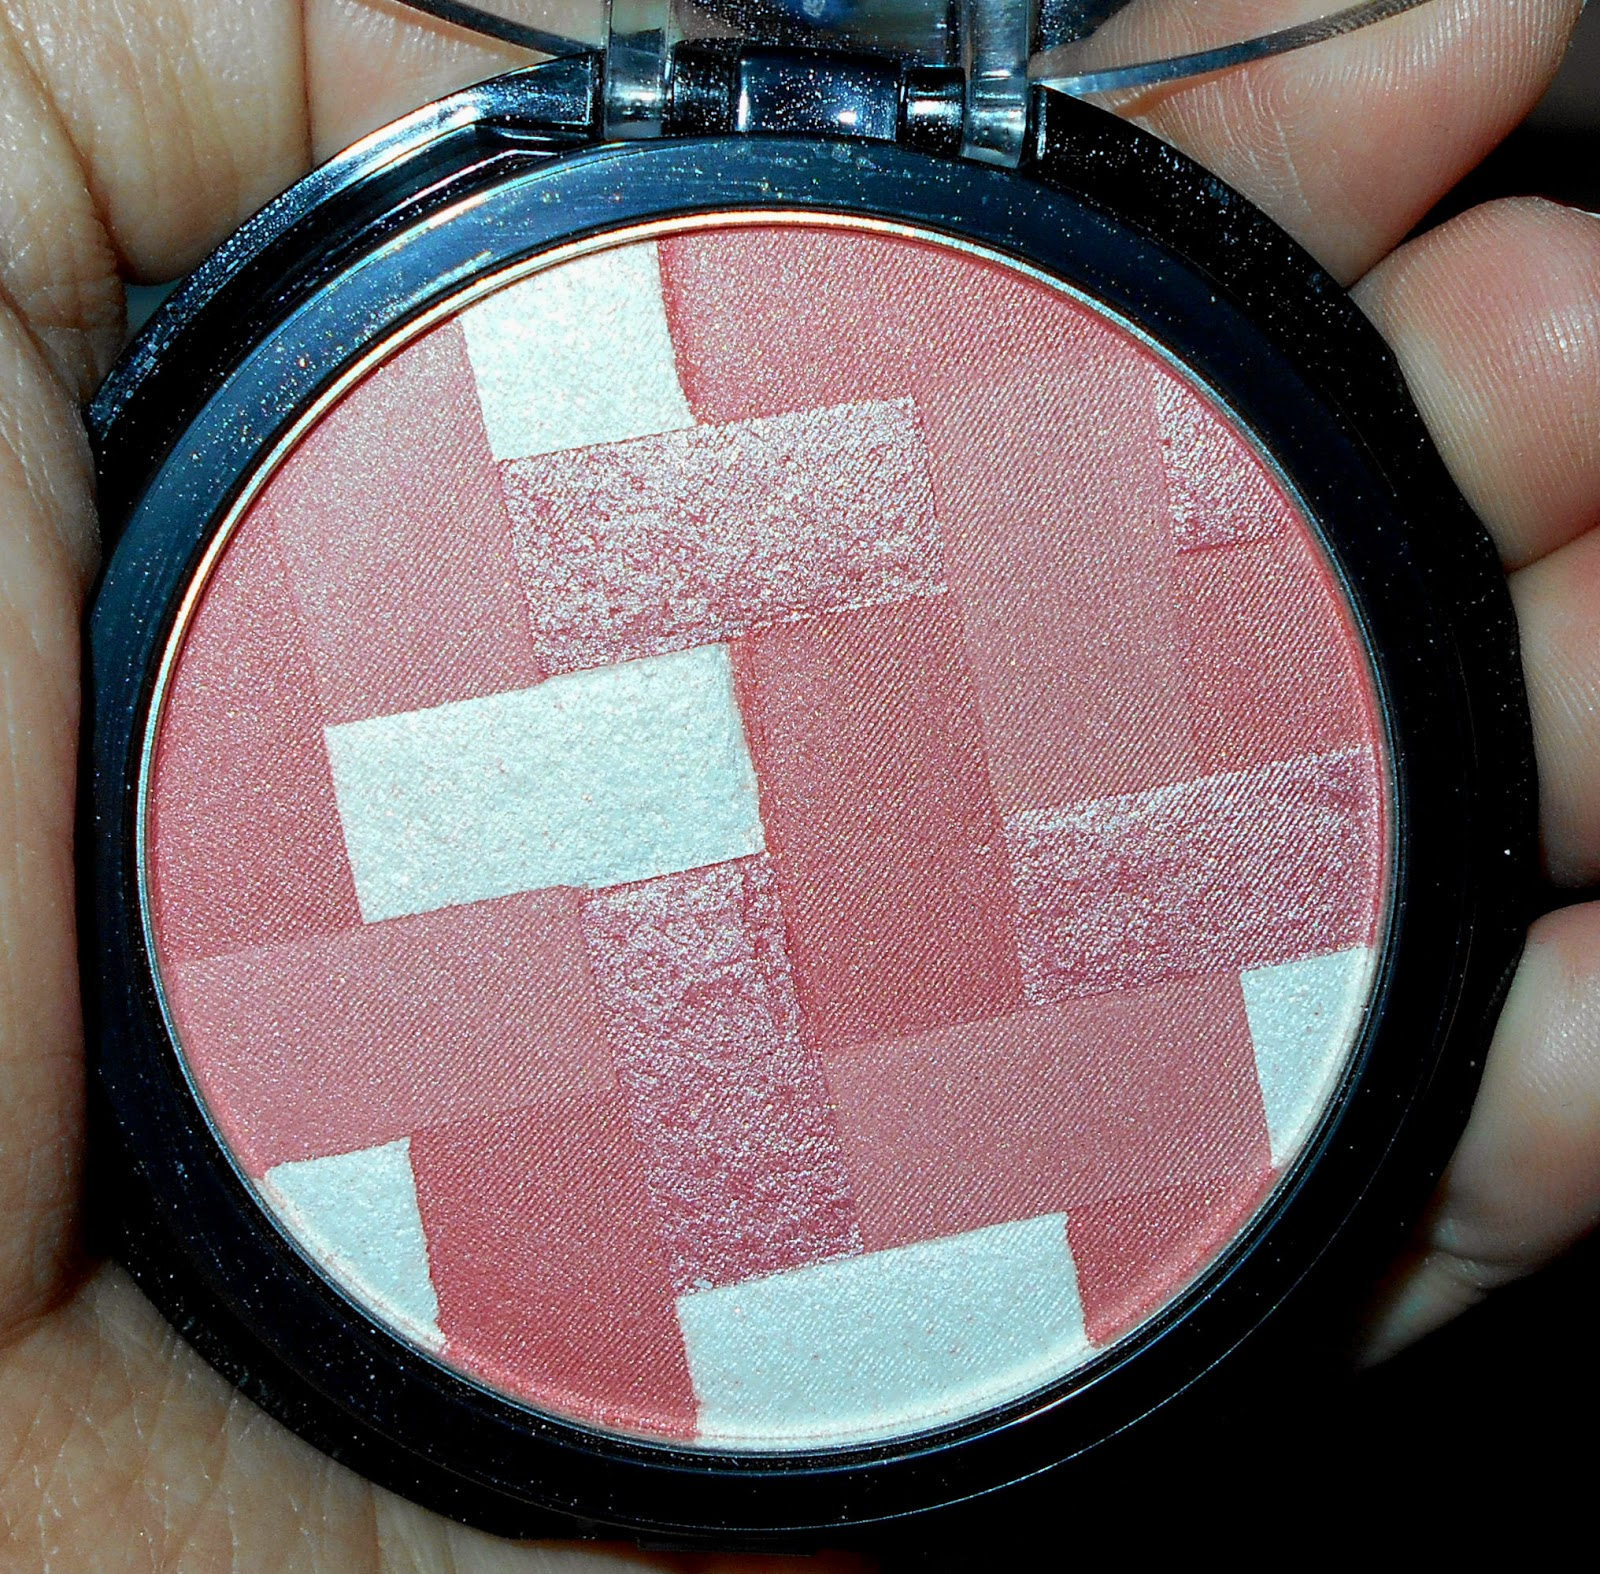 Maybelline Master Hi-Light Blushes in Pink Rose